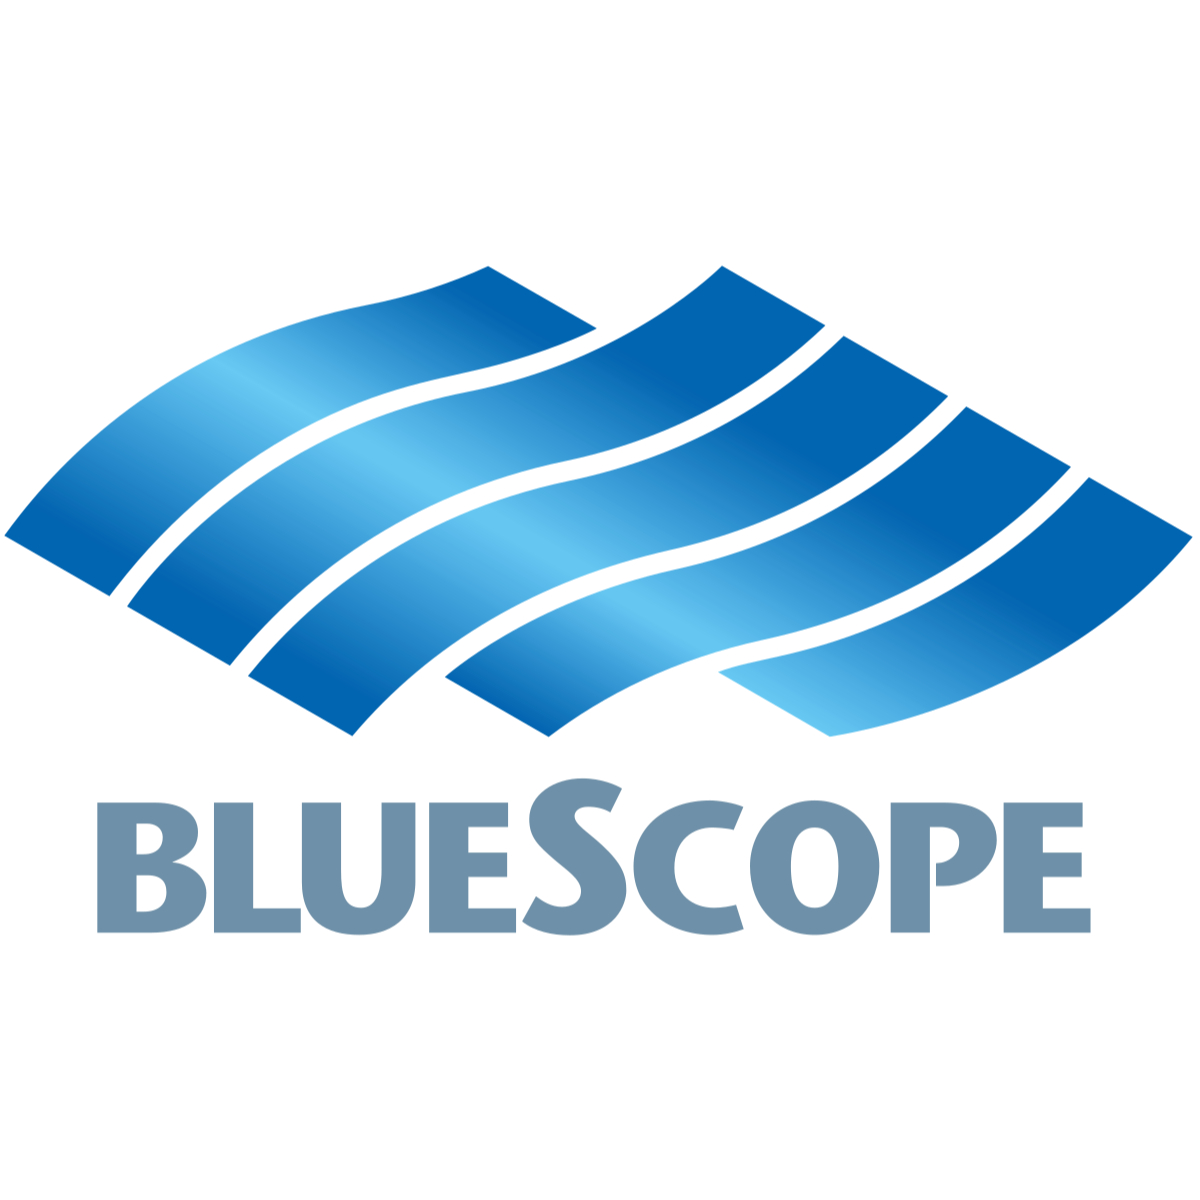 https://freightquip.com/production/wp-content/uploads/2020/07/BlueScope-Logo.jpg